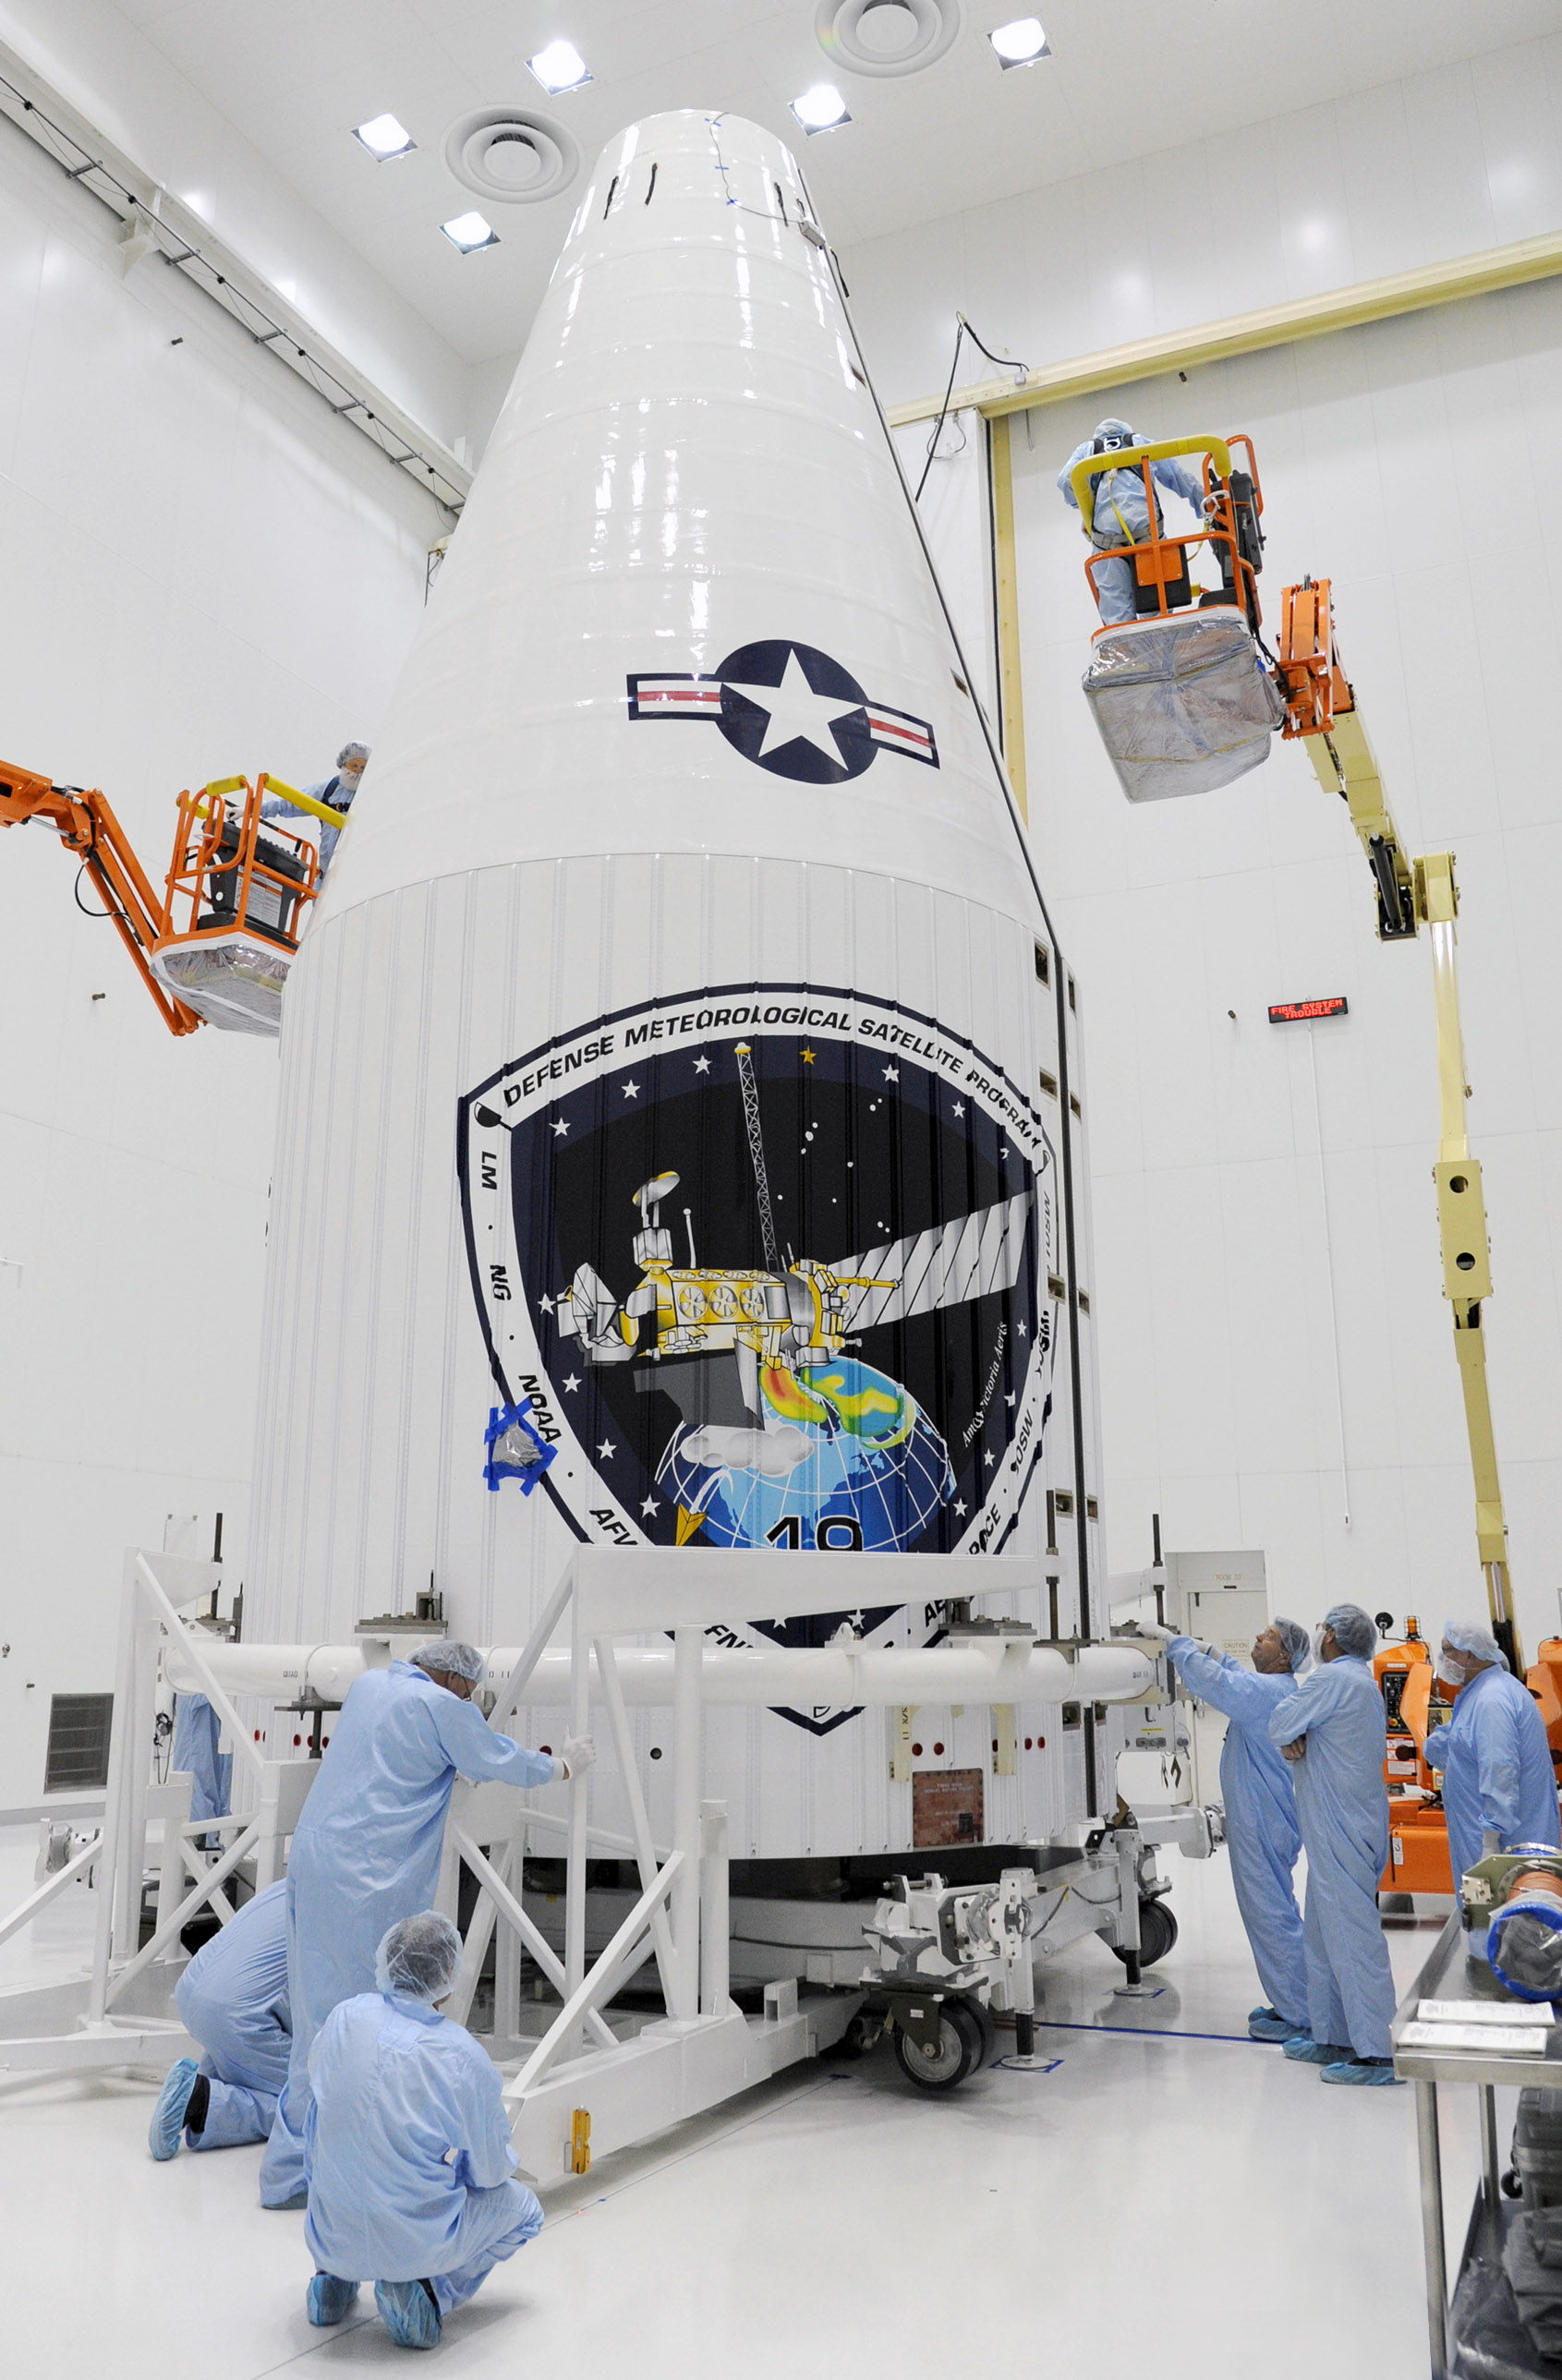 Engineers and technicians at Vandenberg Air Force Base, Calif. encapsulate the 19th Defense Meteorological Satellite Program (DMSP) block 5D weather satellite within its launch fairing on March 14. Launch is scheduled for April 3. Image Source: United Launch Alliance